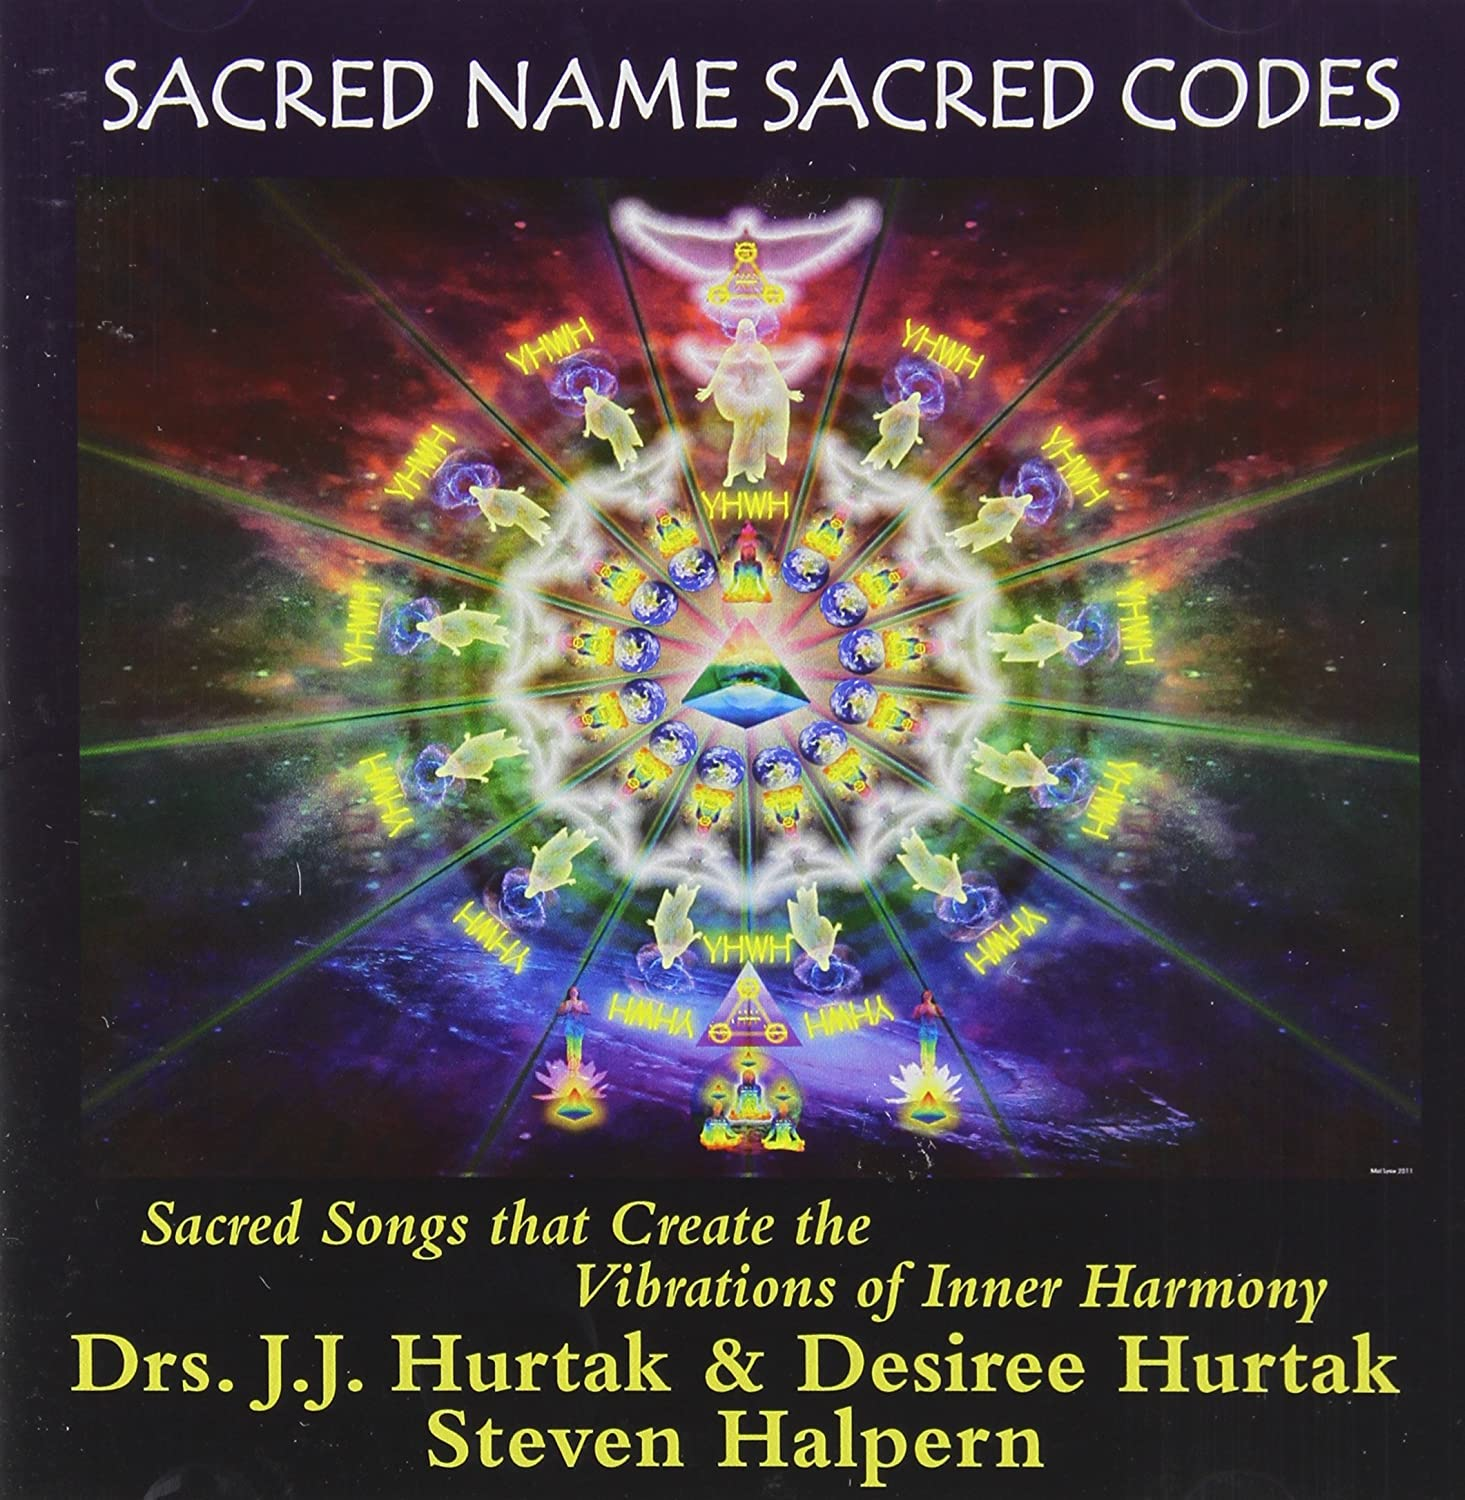 J J  HURTAK - SACRED NAME SACRED CODES | Amazon com au | Music